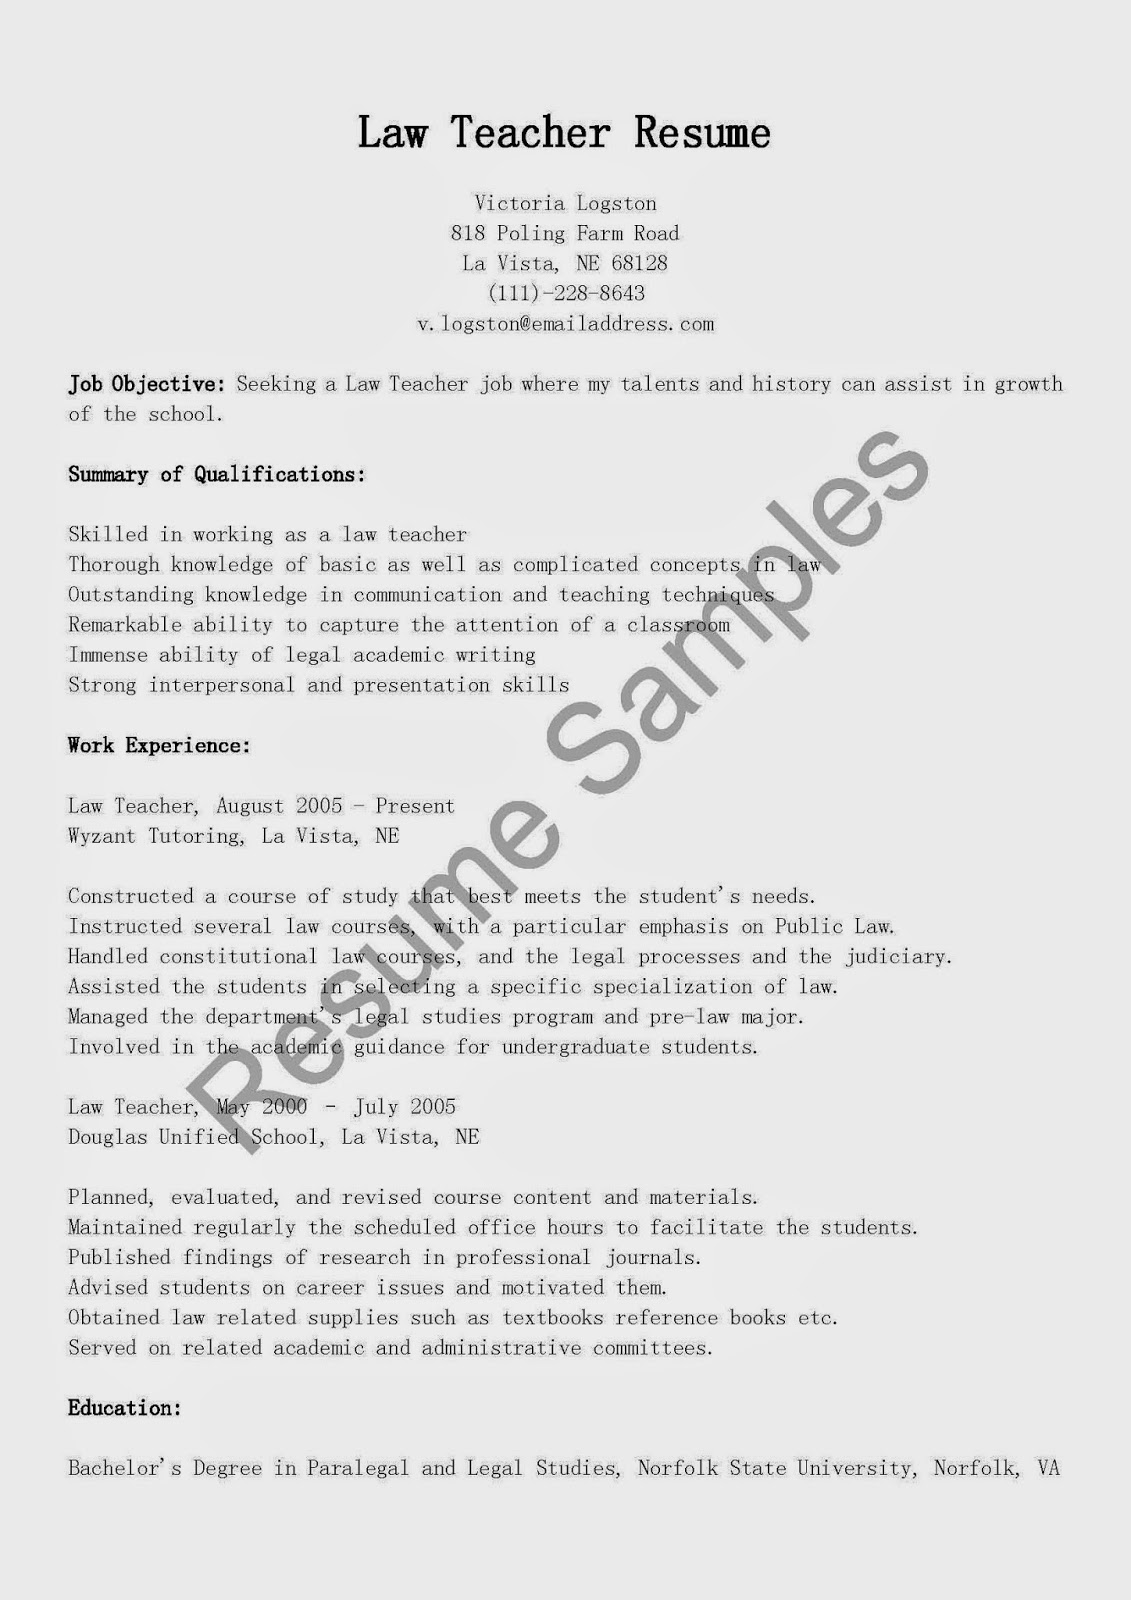 resume samples  law teacher resume sample